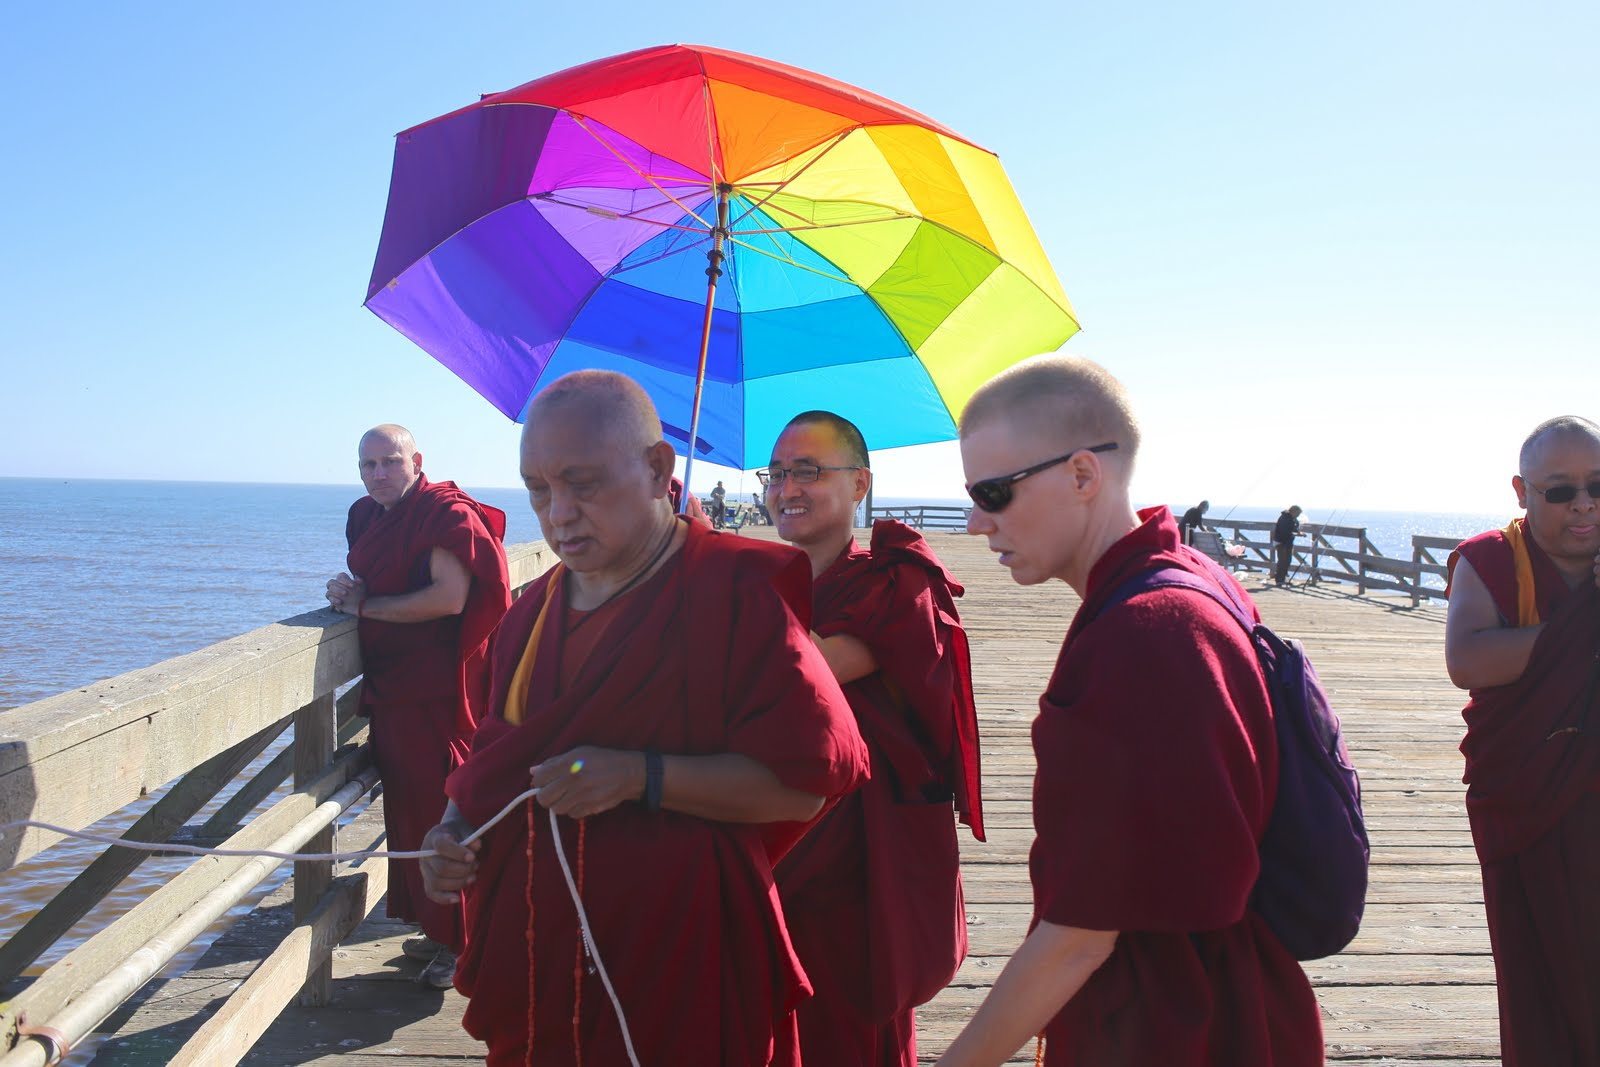 Rinpoche and  Sangha blessing beings in the ocean. California, September 2013.